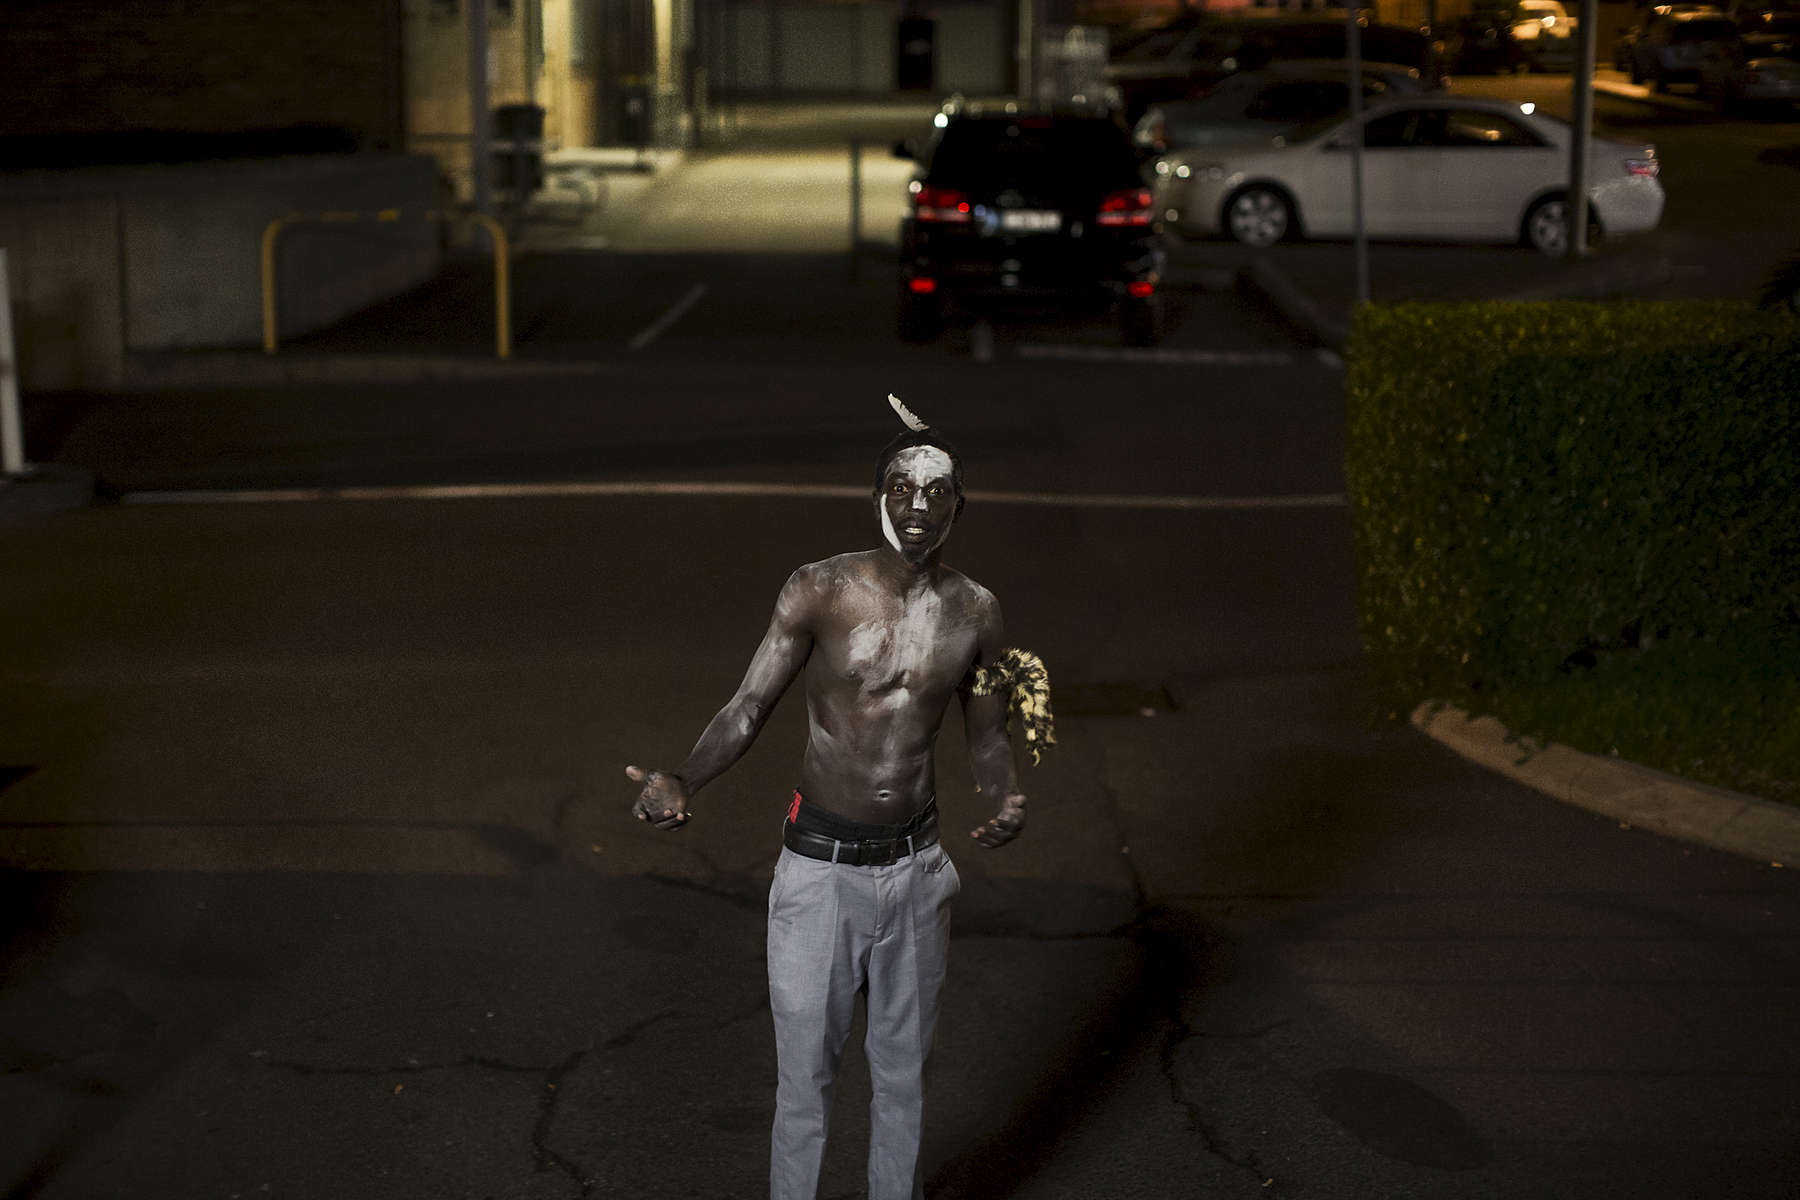 On July 9th 2015 in Western Sydney suburb of Blacktown young Australian South Sudanese men prepare to perform a traditional Dinka Agaar dance. They use talcum powder to cover their skin, in South Sudan this was traditionally done with ash and feathers from native birds would also be used to adorn the body and head, however in Australia chicken feathers are utilized as a substitute.